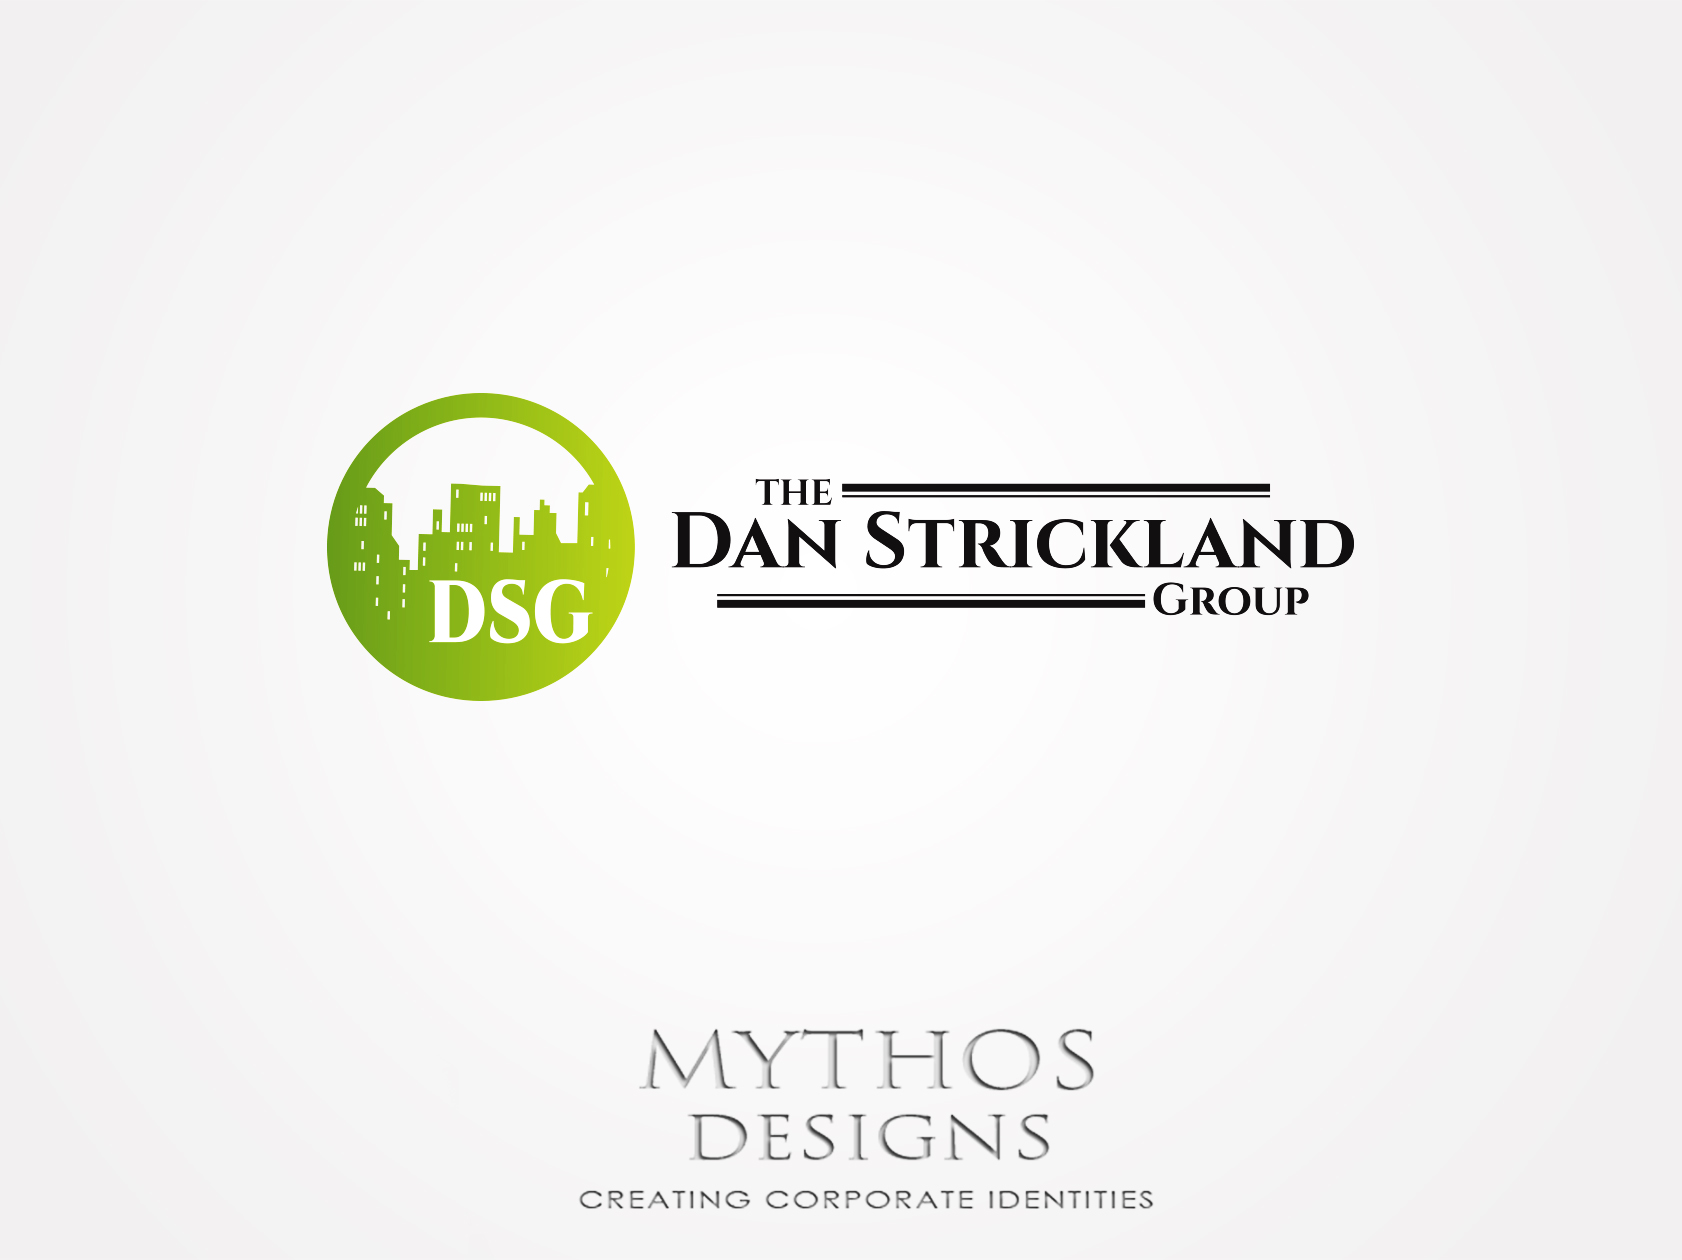 Logo Design by Mythos Designs - Entry No. 17 in the Logo Design Contest Creative Logo Design for The Dan Strickland Group.